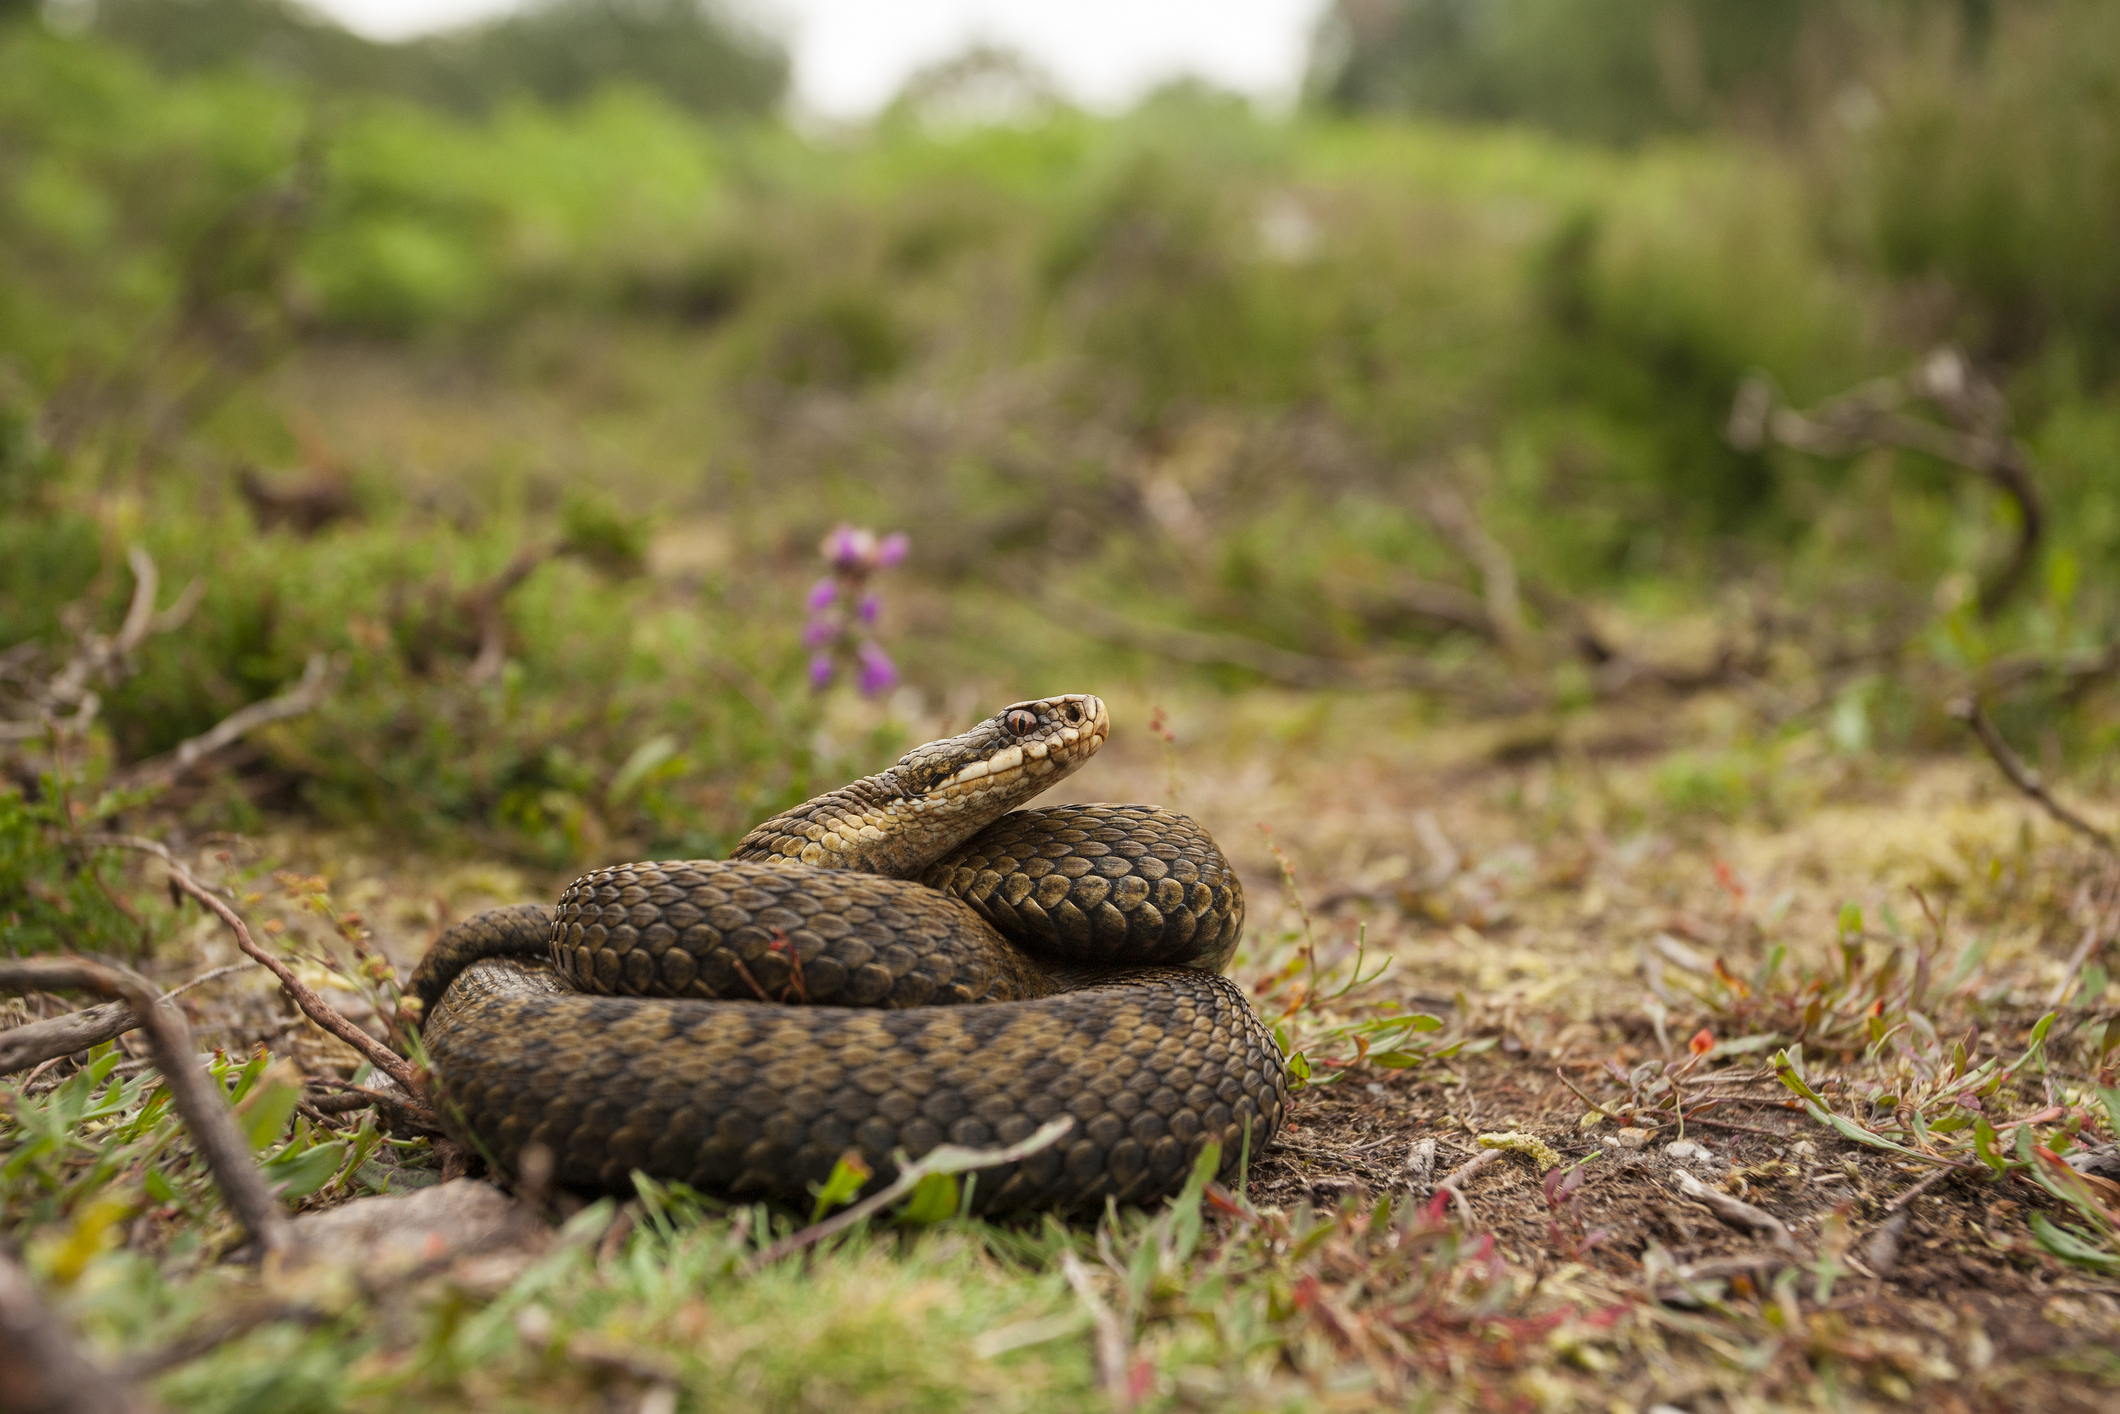 Adder coiled up on the heathland